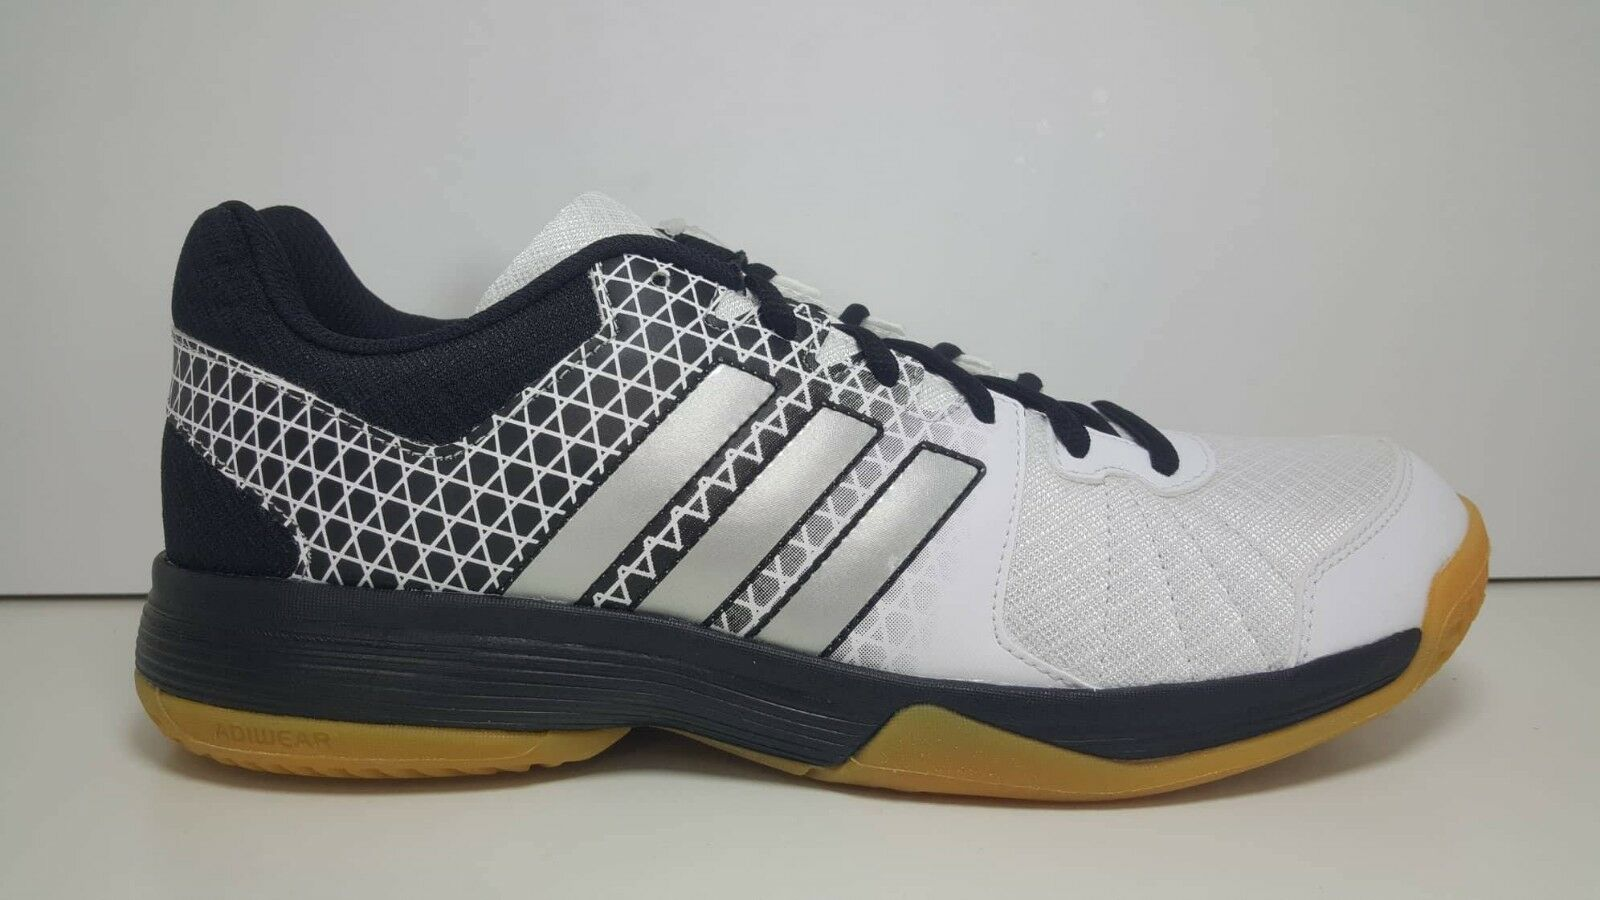 SCARPE  N. 38 2/3 /2 ADIDAS LIGRA 4 W SNEAKERS  BASSE ART. AF5241 New shoes for men and women, limited time discount